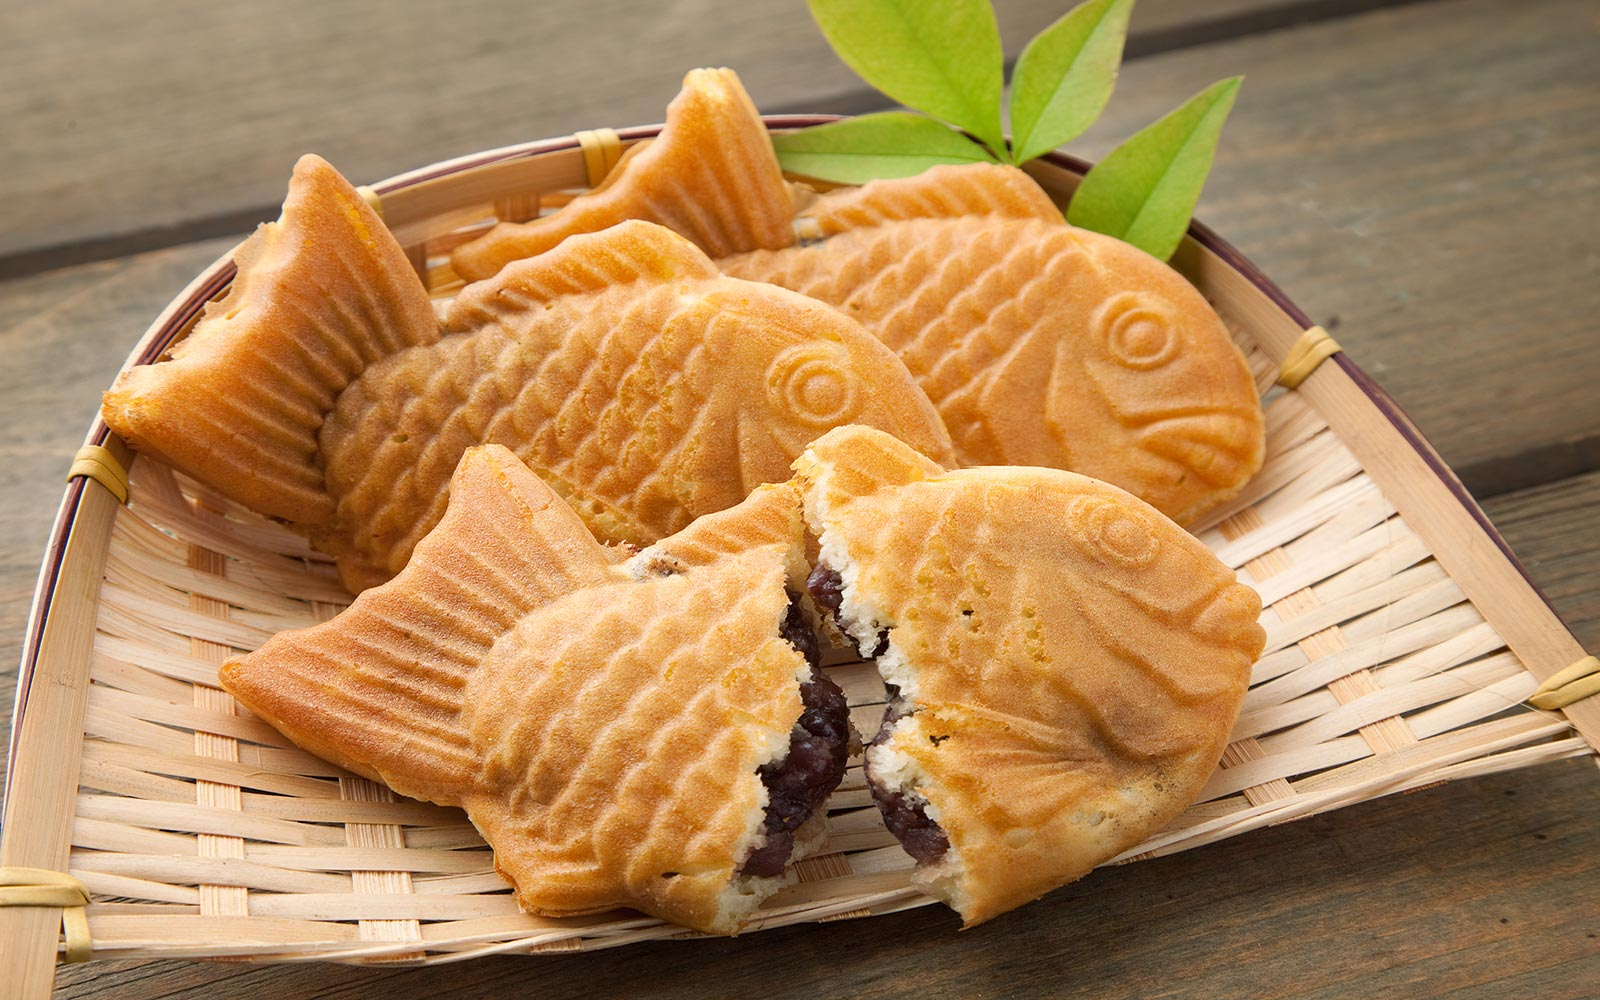 Image for What about the fish-shaped taiyaki from Japan?